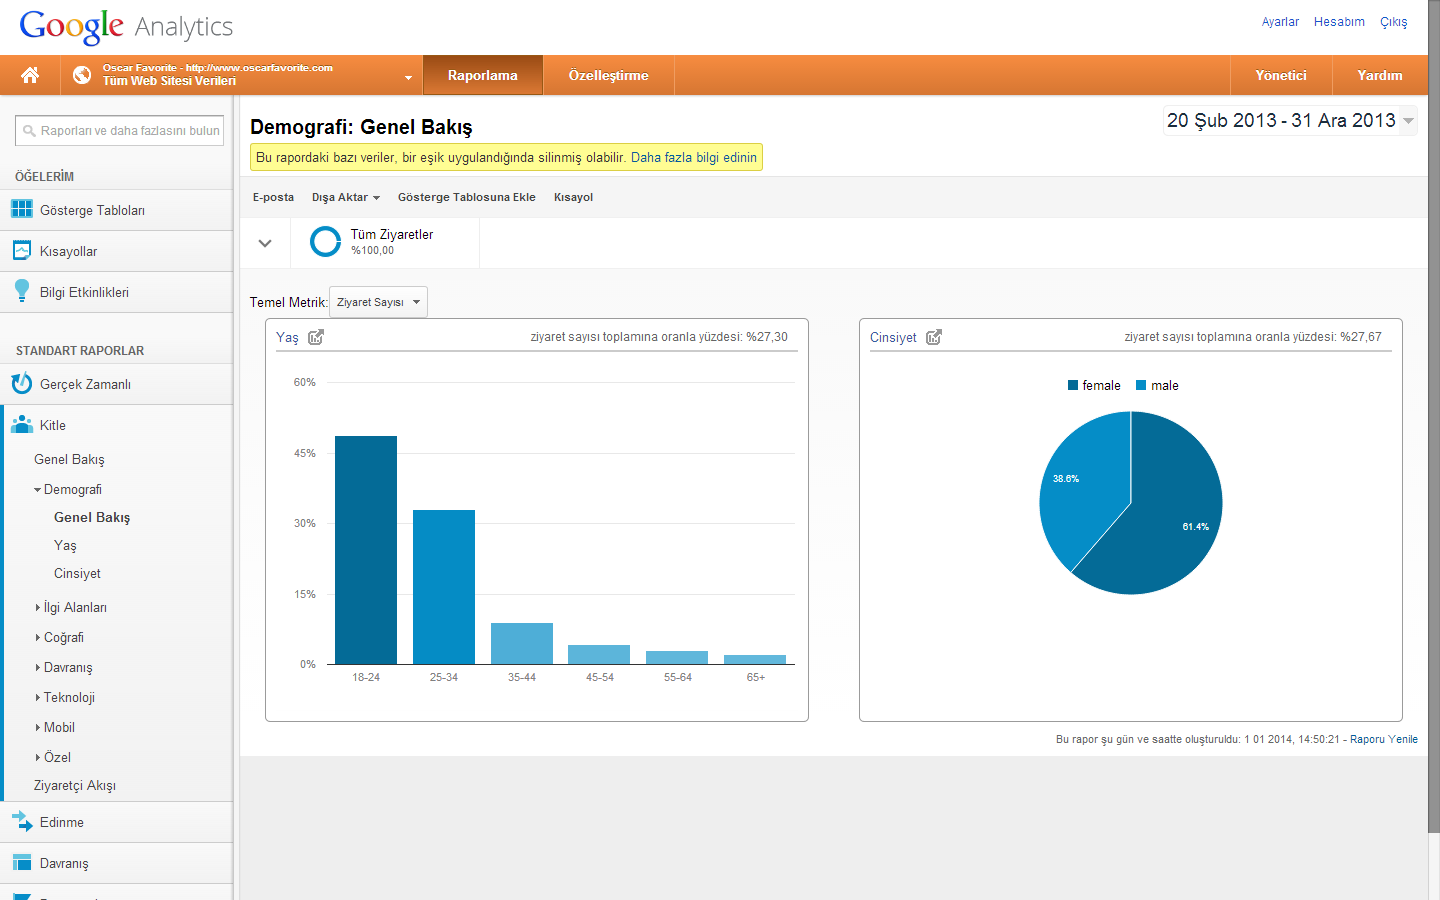 google analytics demografi genel bakis